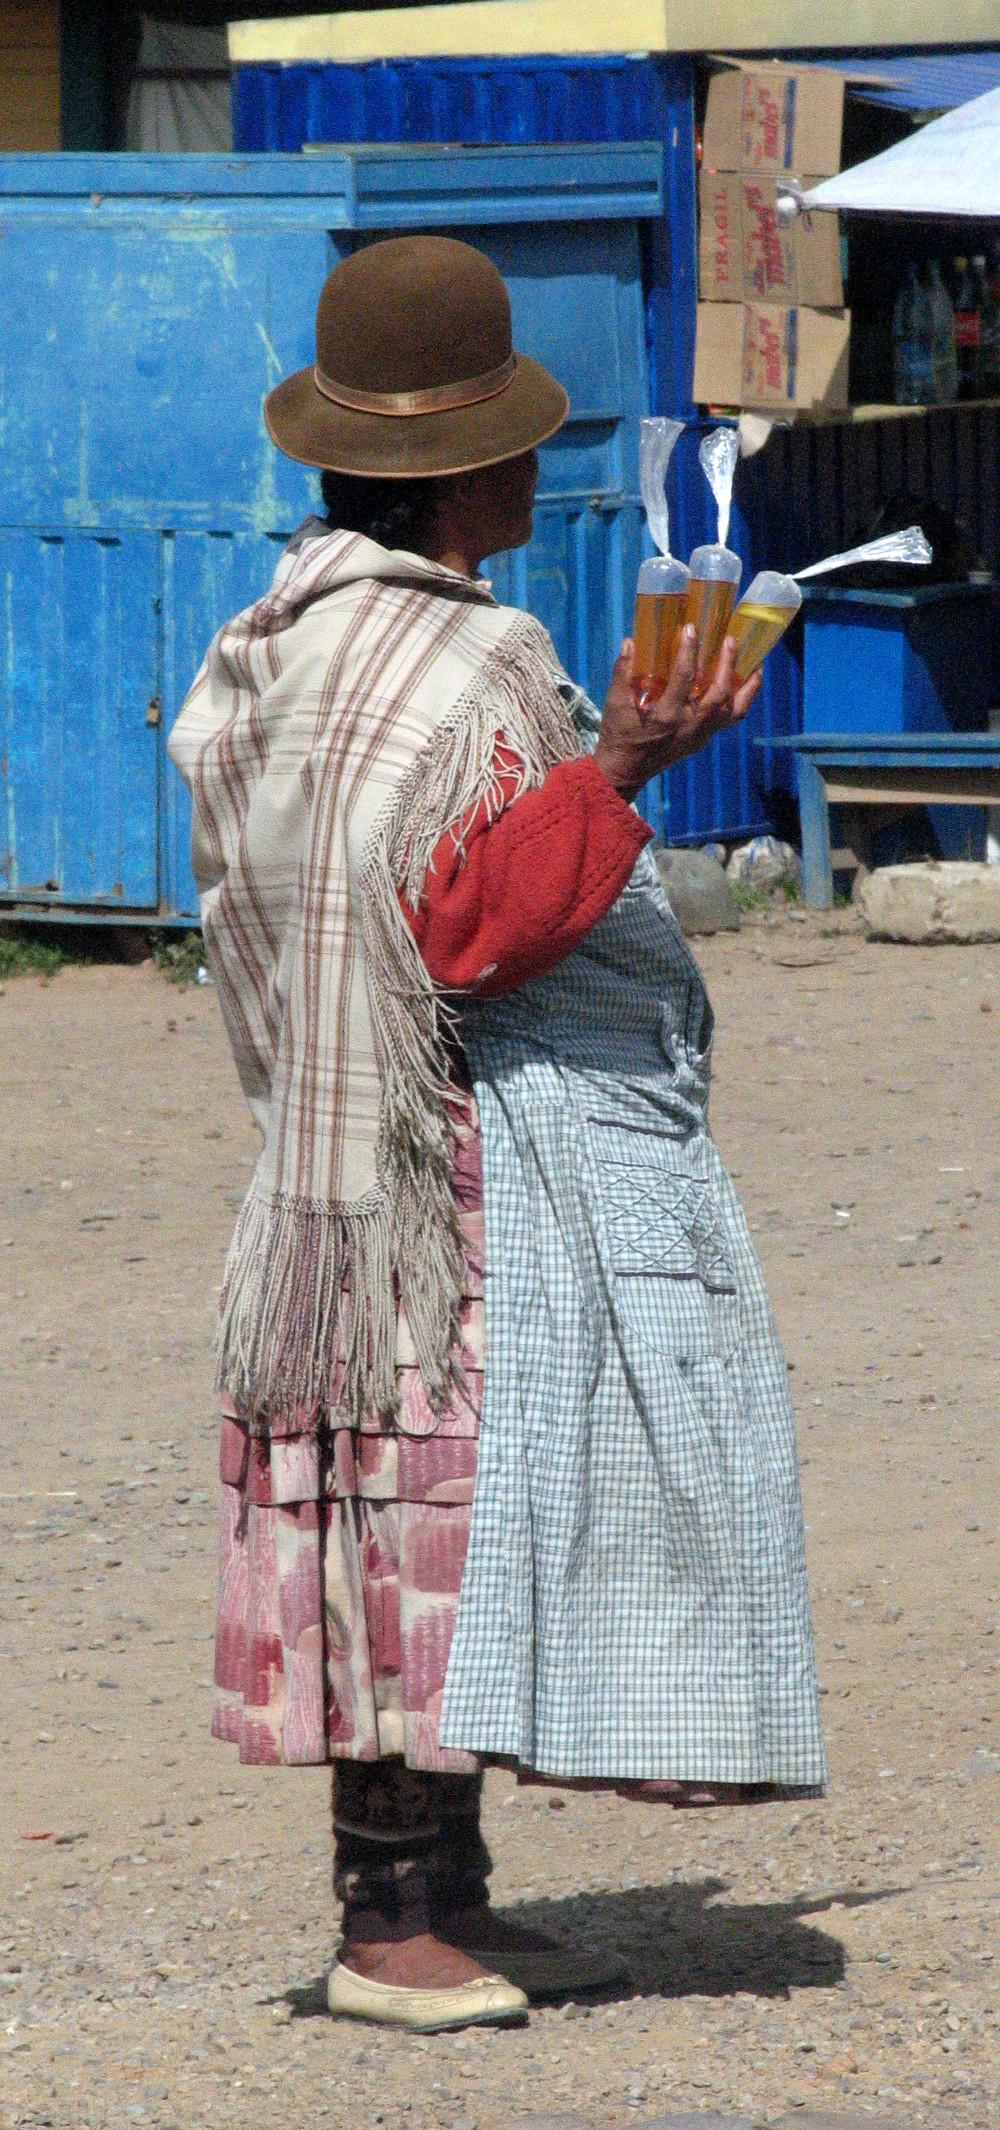 Woman in Bolivia Double-barrelled Travel